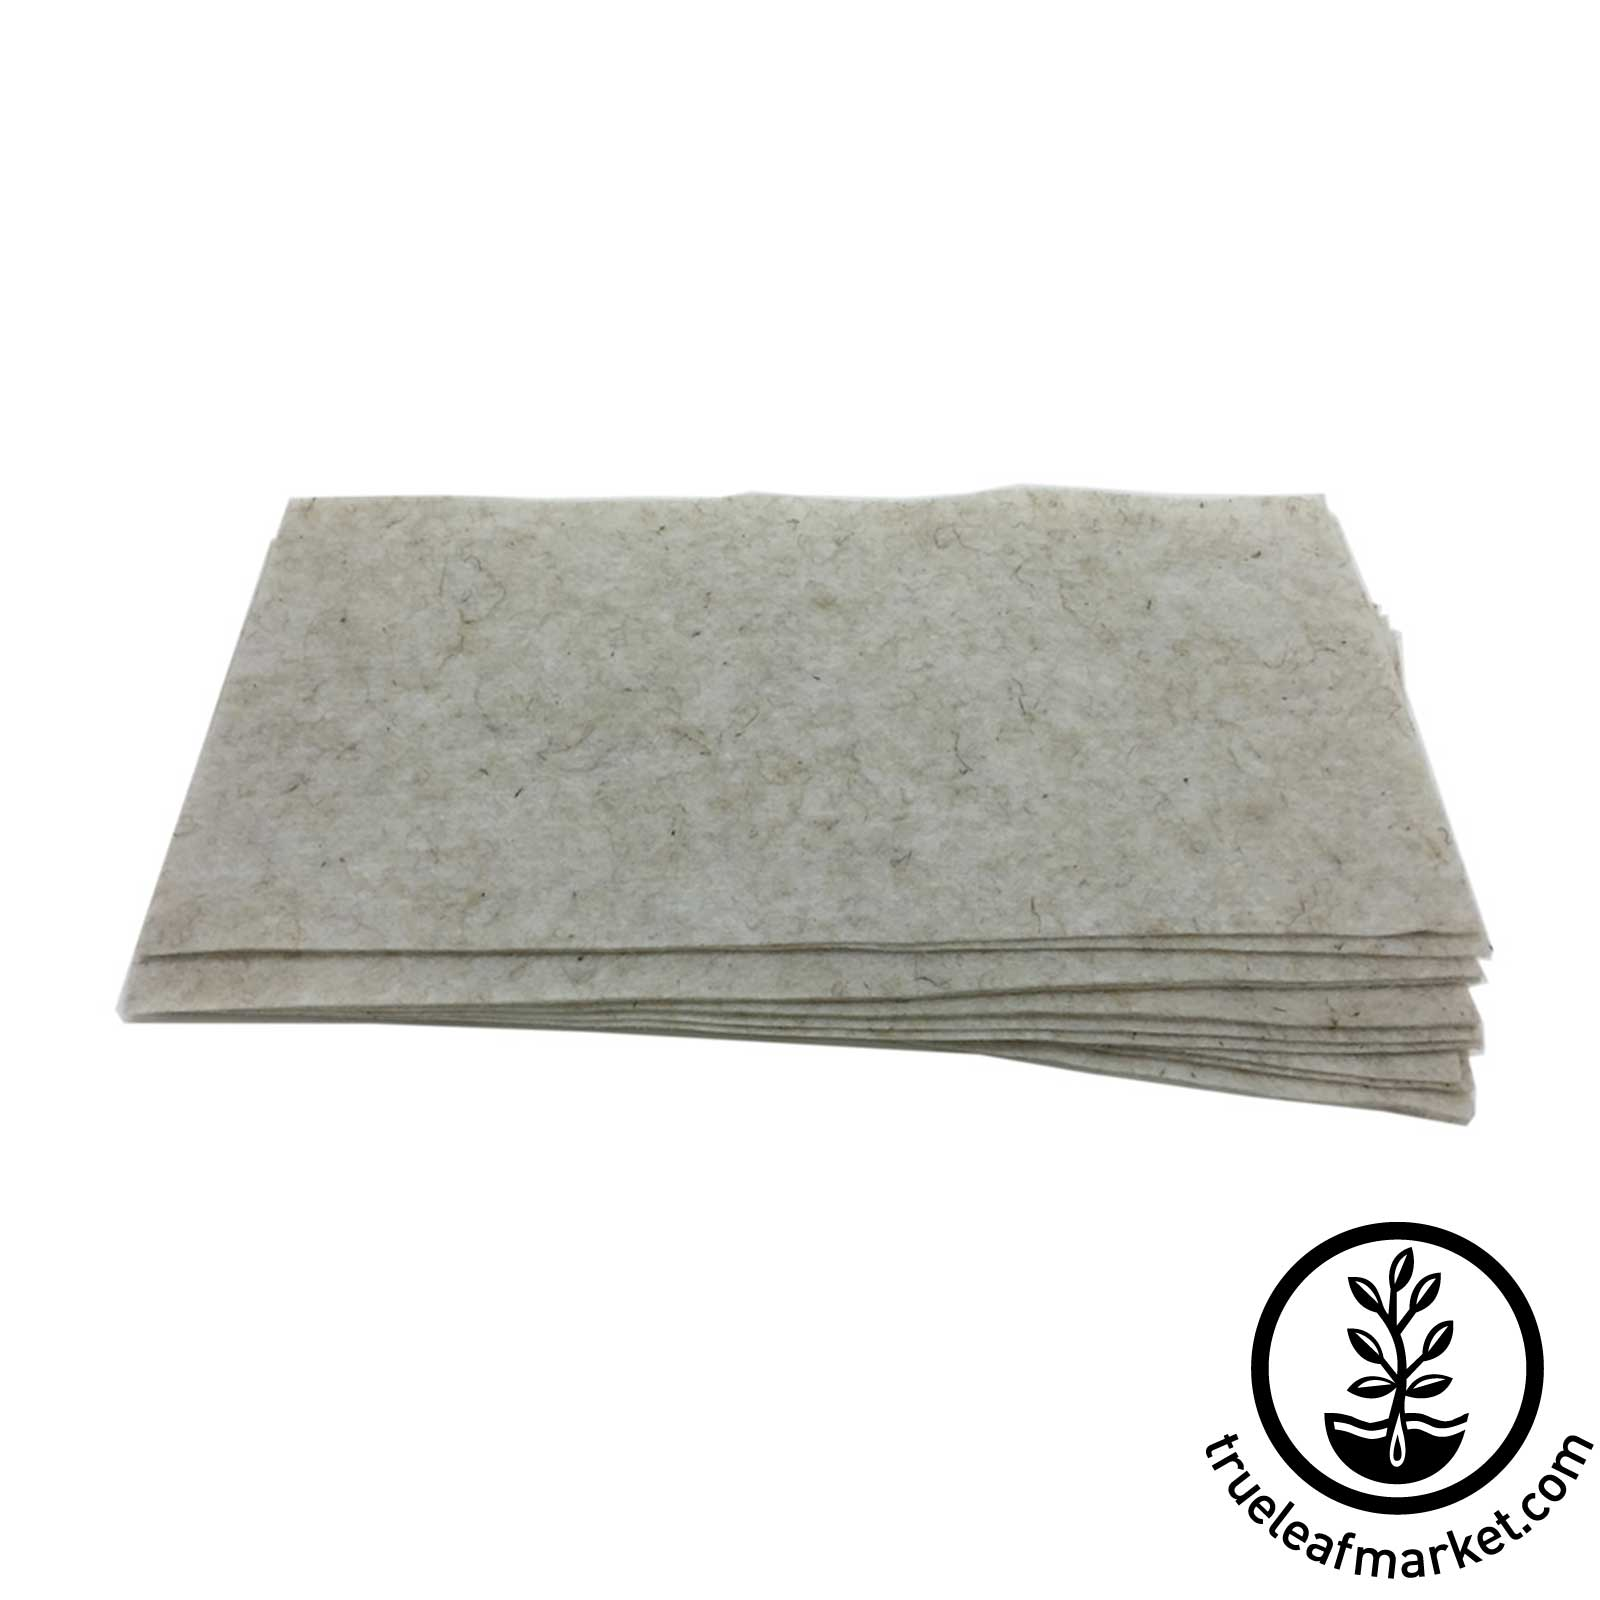 Biostrate felt hydroponic microgreens growing pads for Best growing medium for microgreens